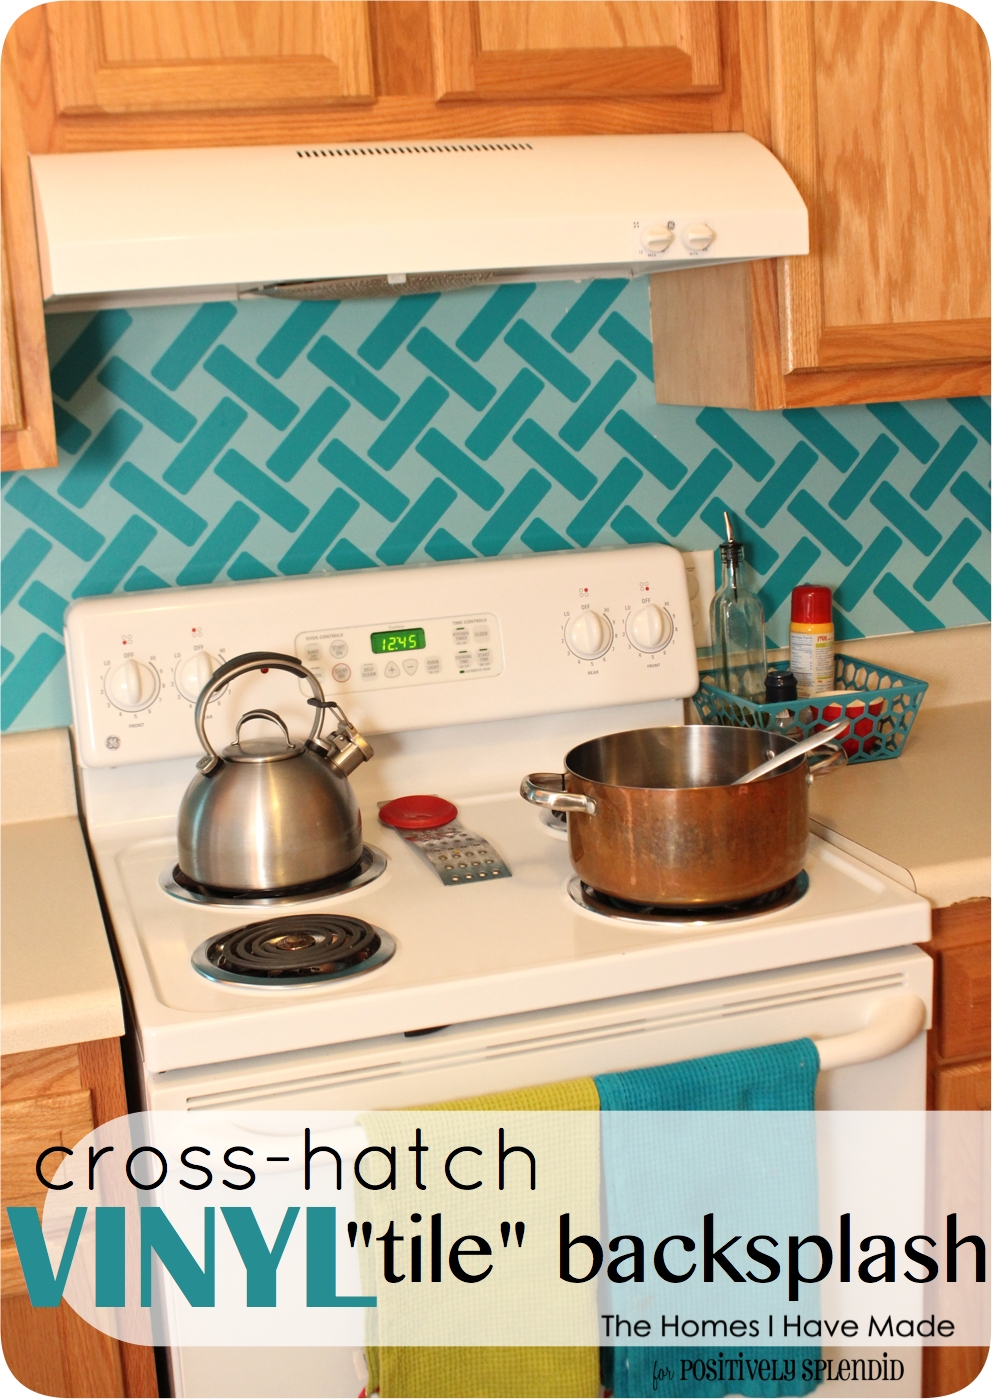 Cross-Hatch Vinyl u201cTileu201d Backsplash!  sc 1 st  The Homes I Have Made & Cross-Hatch Vinyl